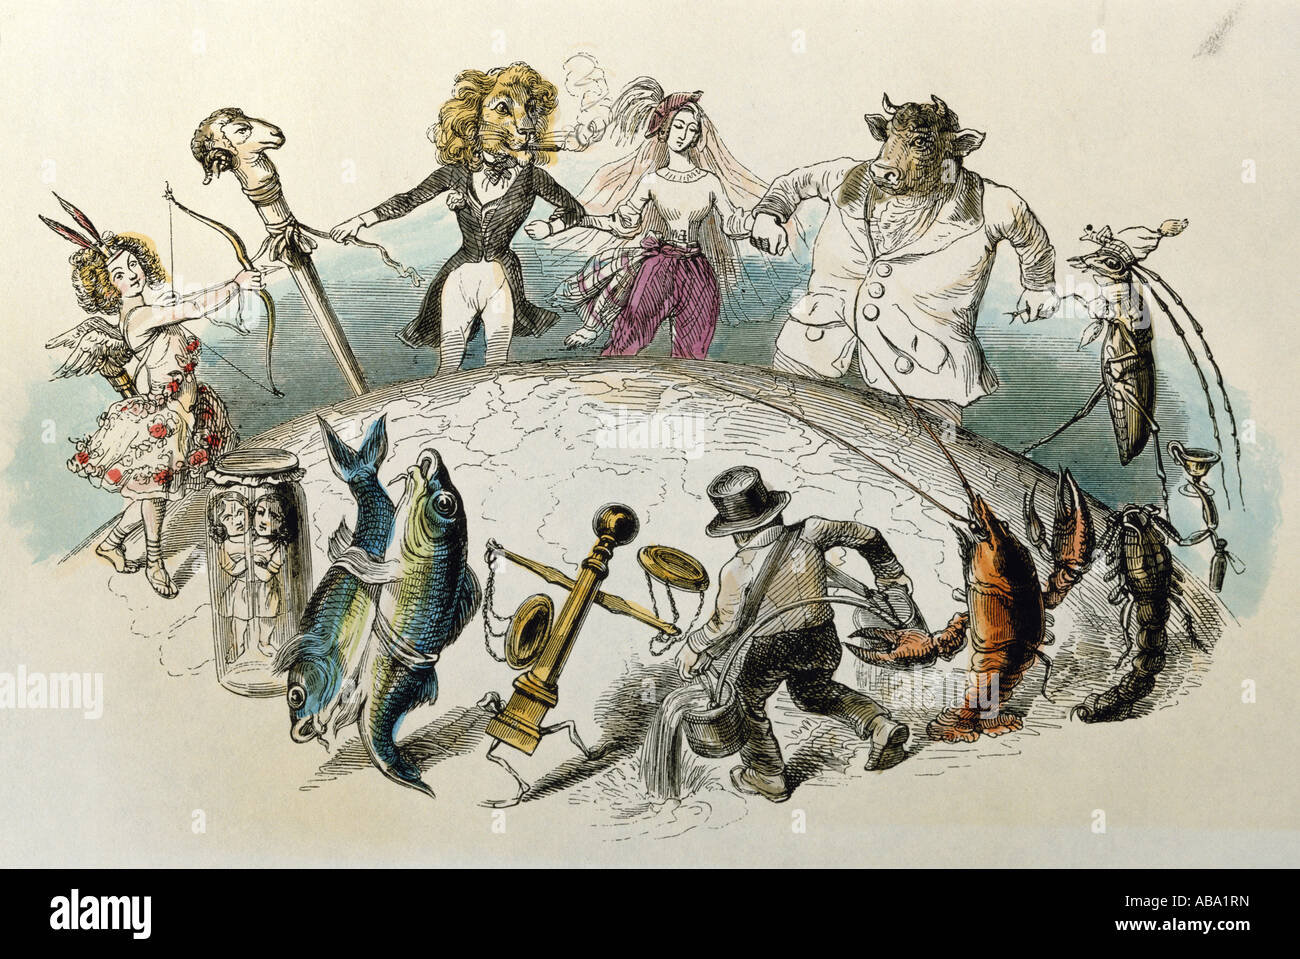 astrology, zodiac signs, caricature, 'The zodiac in a round dance around the world', coloured engraving - Stock Image